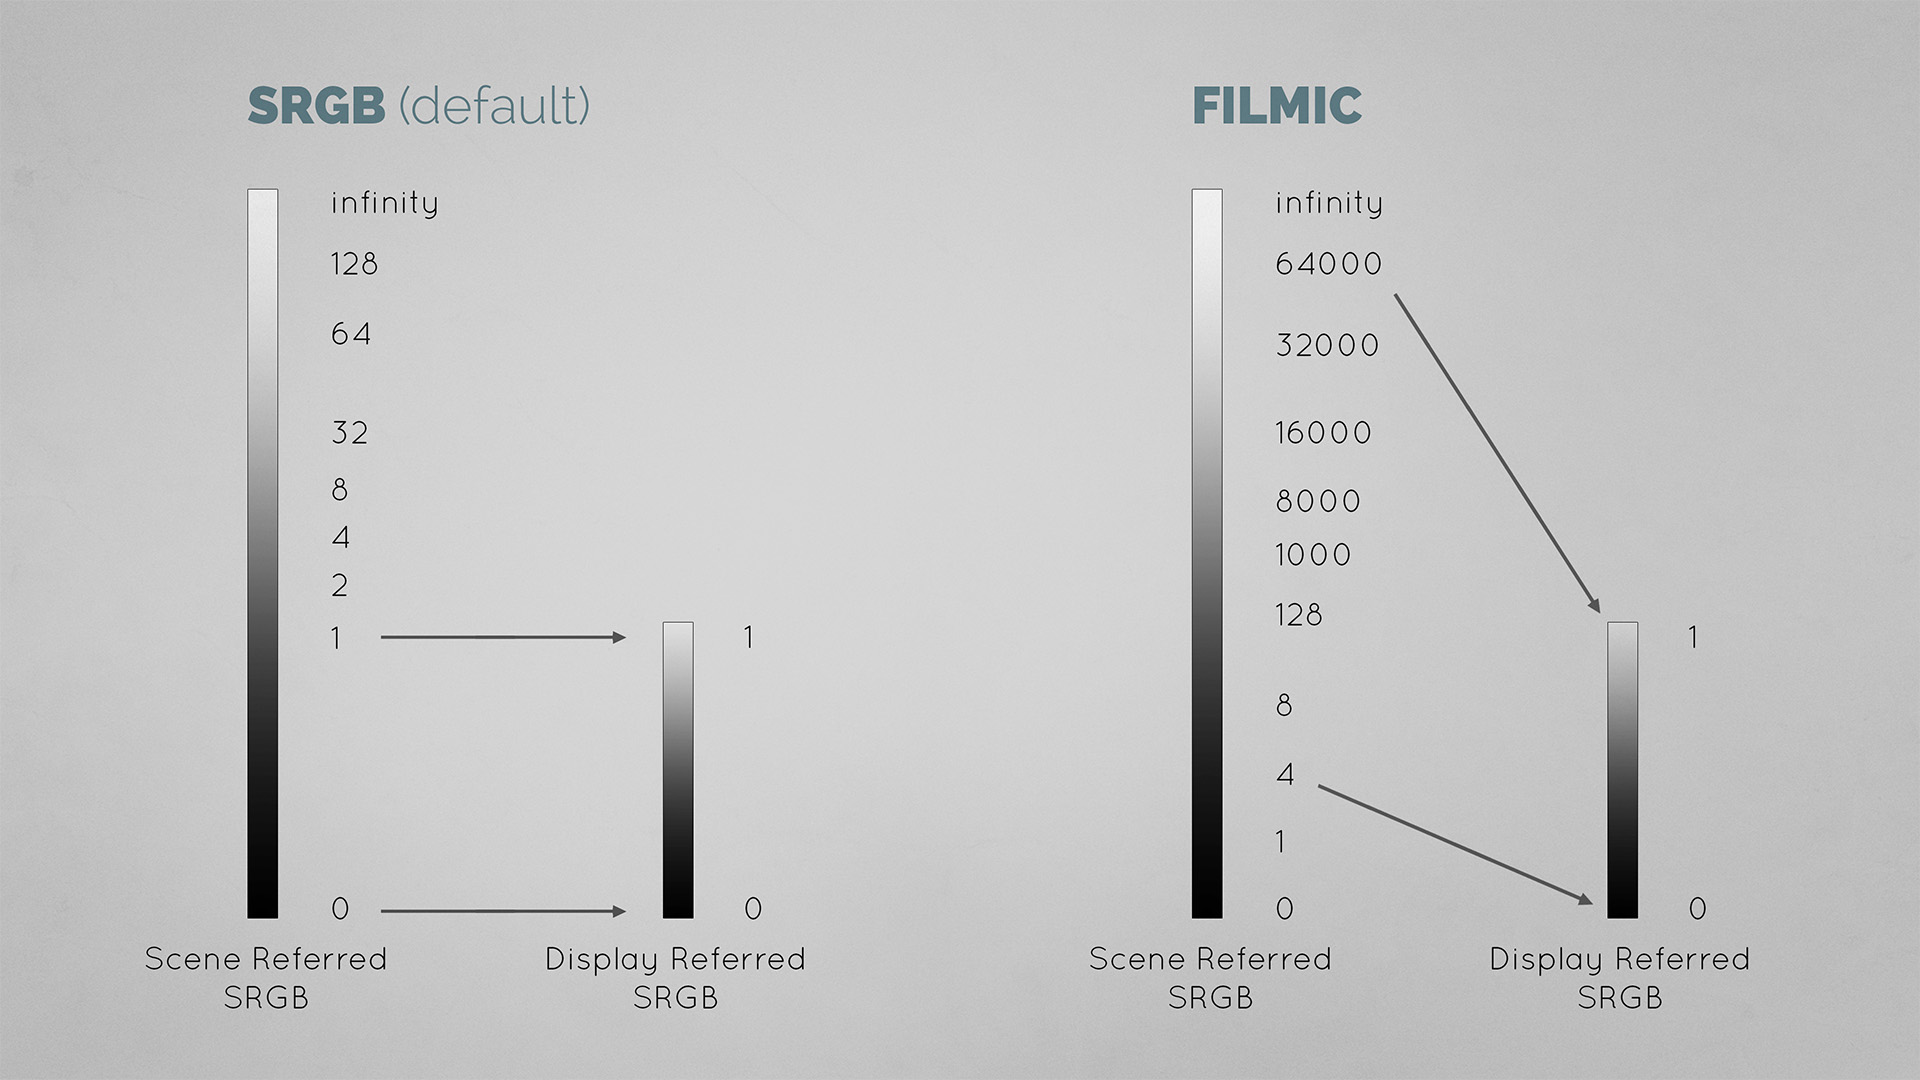 Filmic Blender vs SRGB